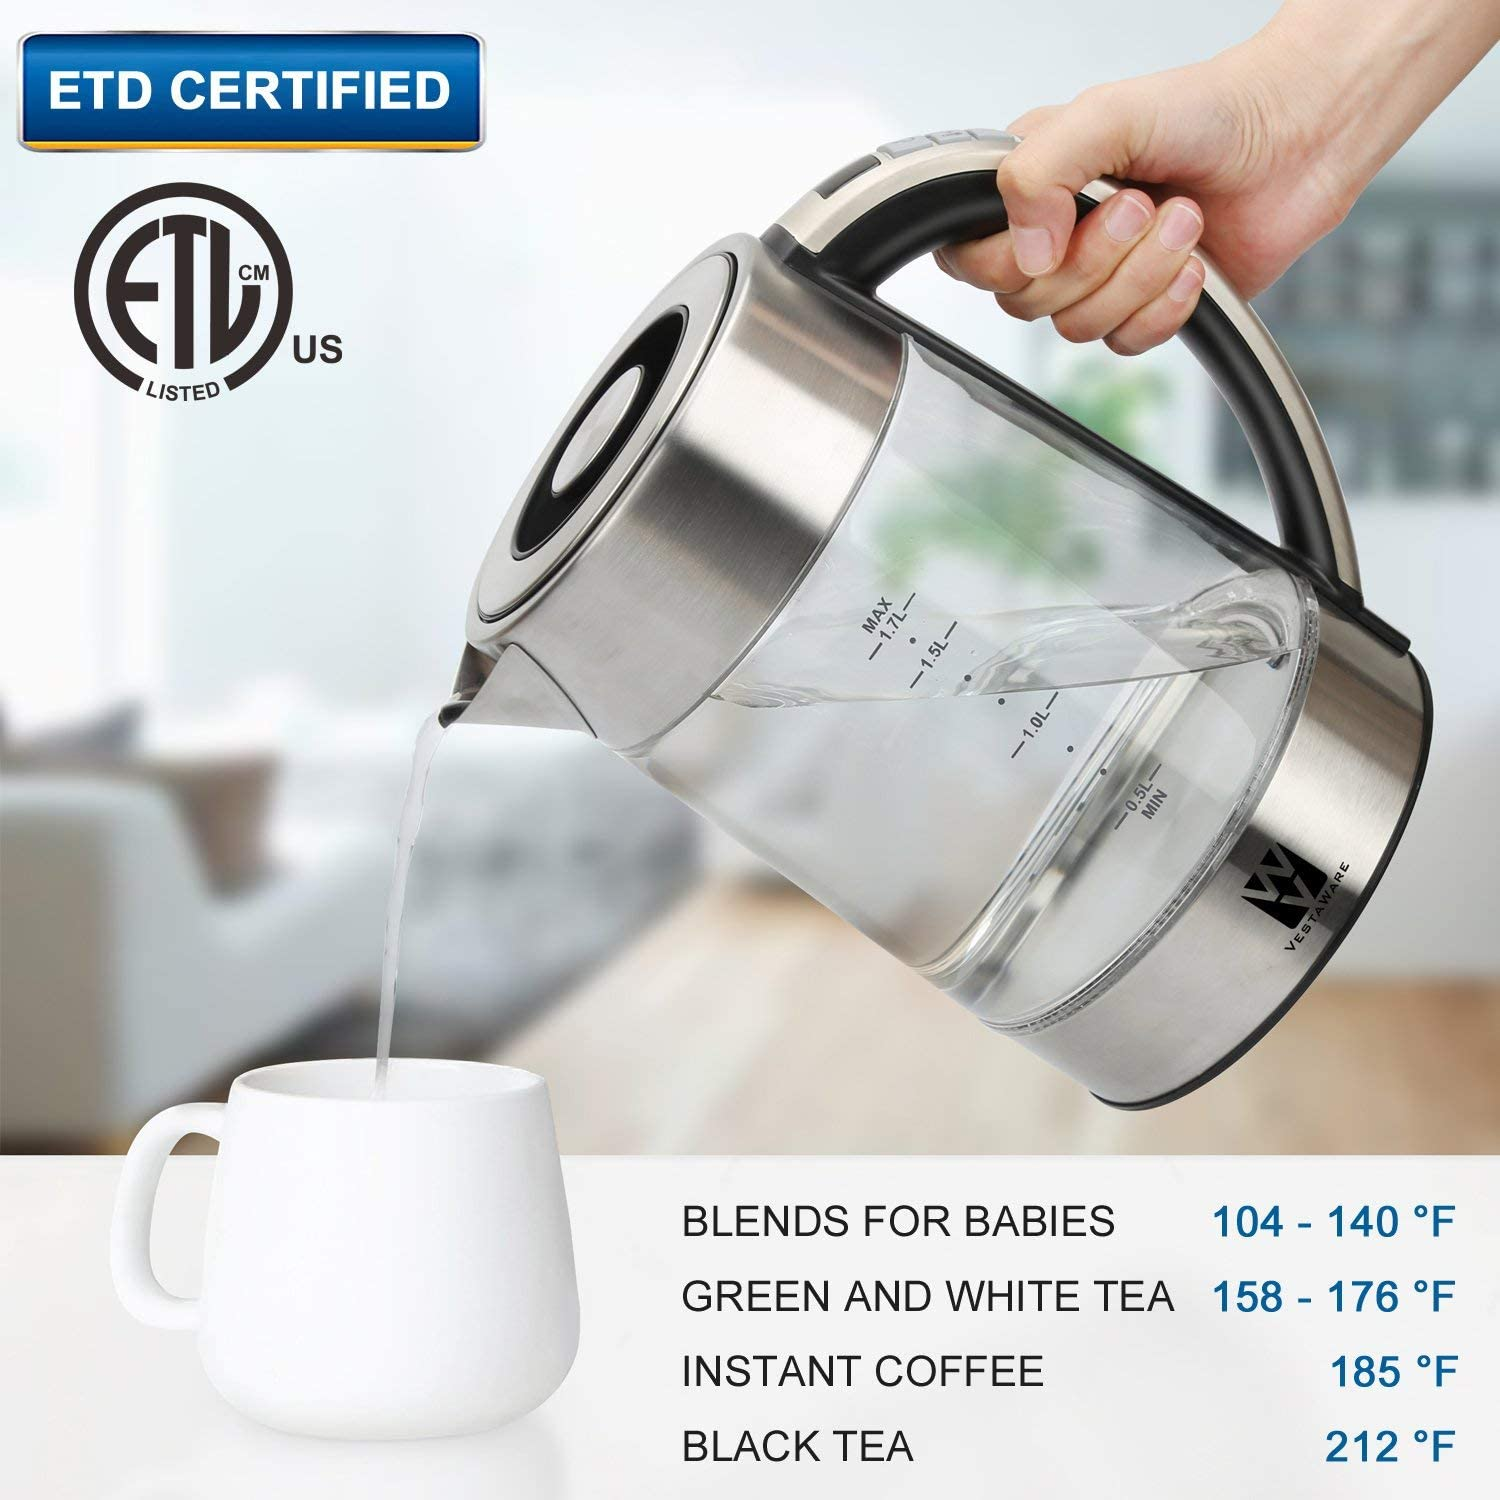 Vestaware Glass Electric Kettle,1.7L Electric Kettle-LED Display Digital Variable Temperature Control Keep-Warm Function, Hot Water Kettle with Auto Shut-Off and Boil-Dry Protection